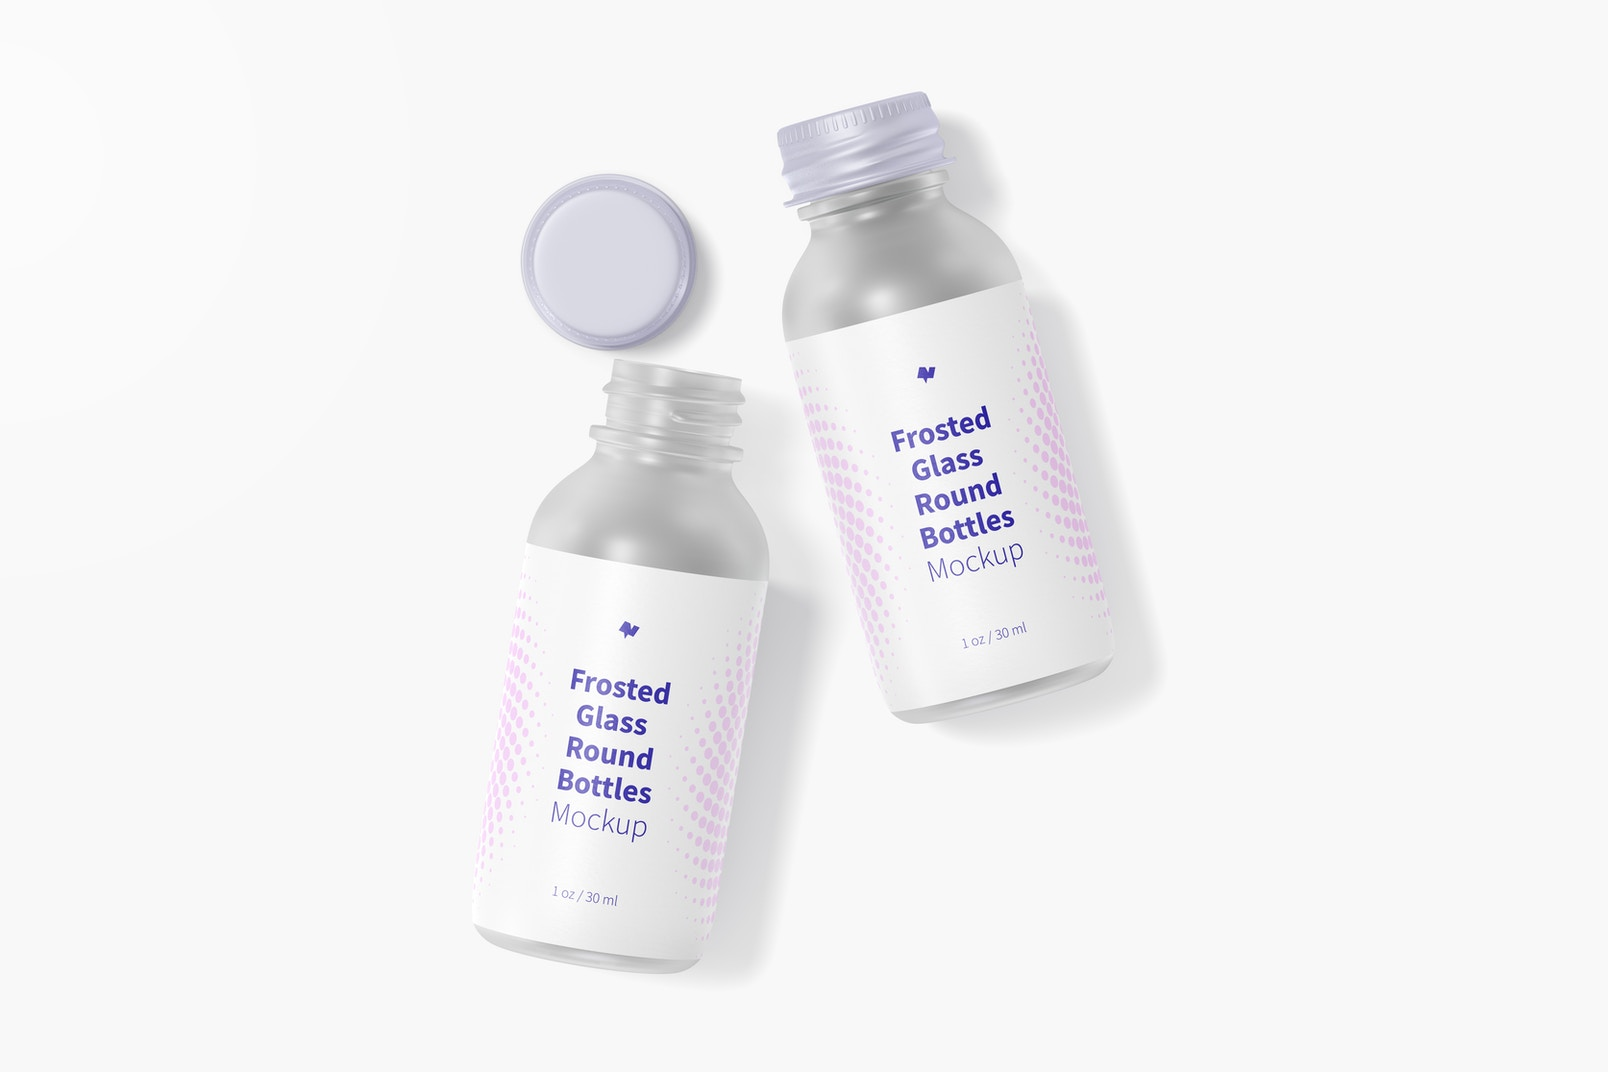 1 oz Frosted Glass Round Bottles Mockup, Top View